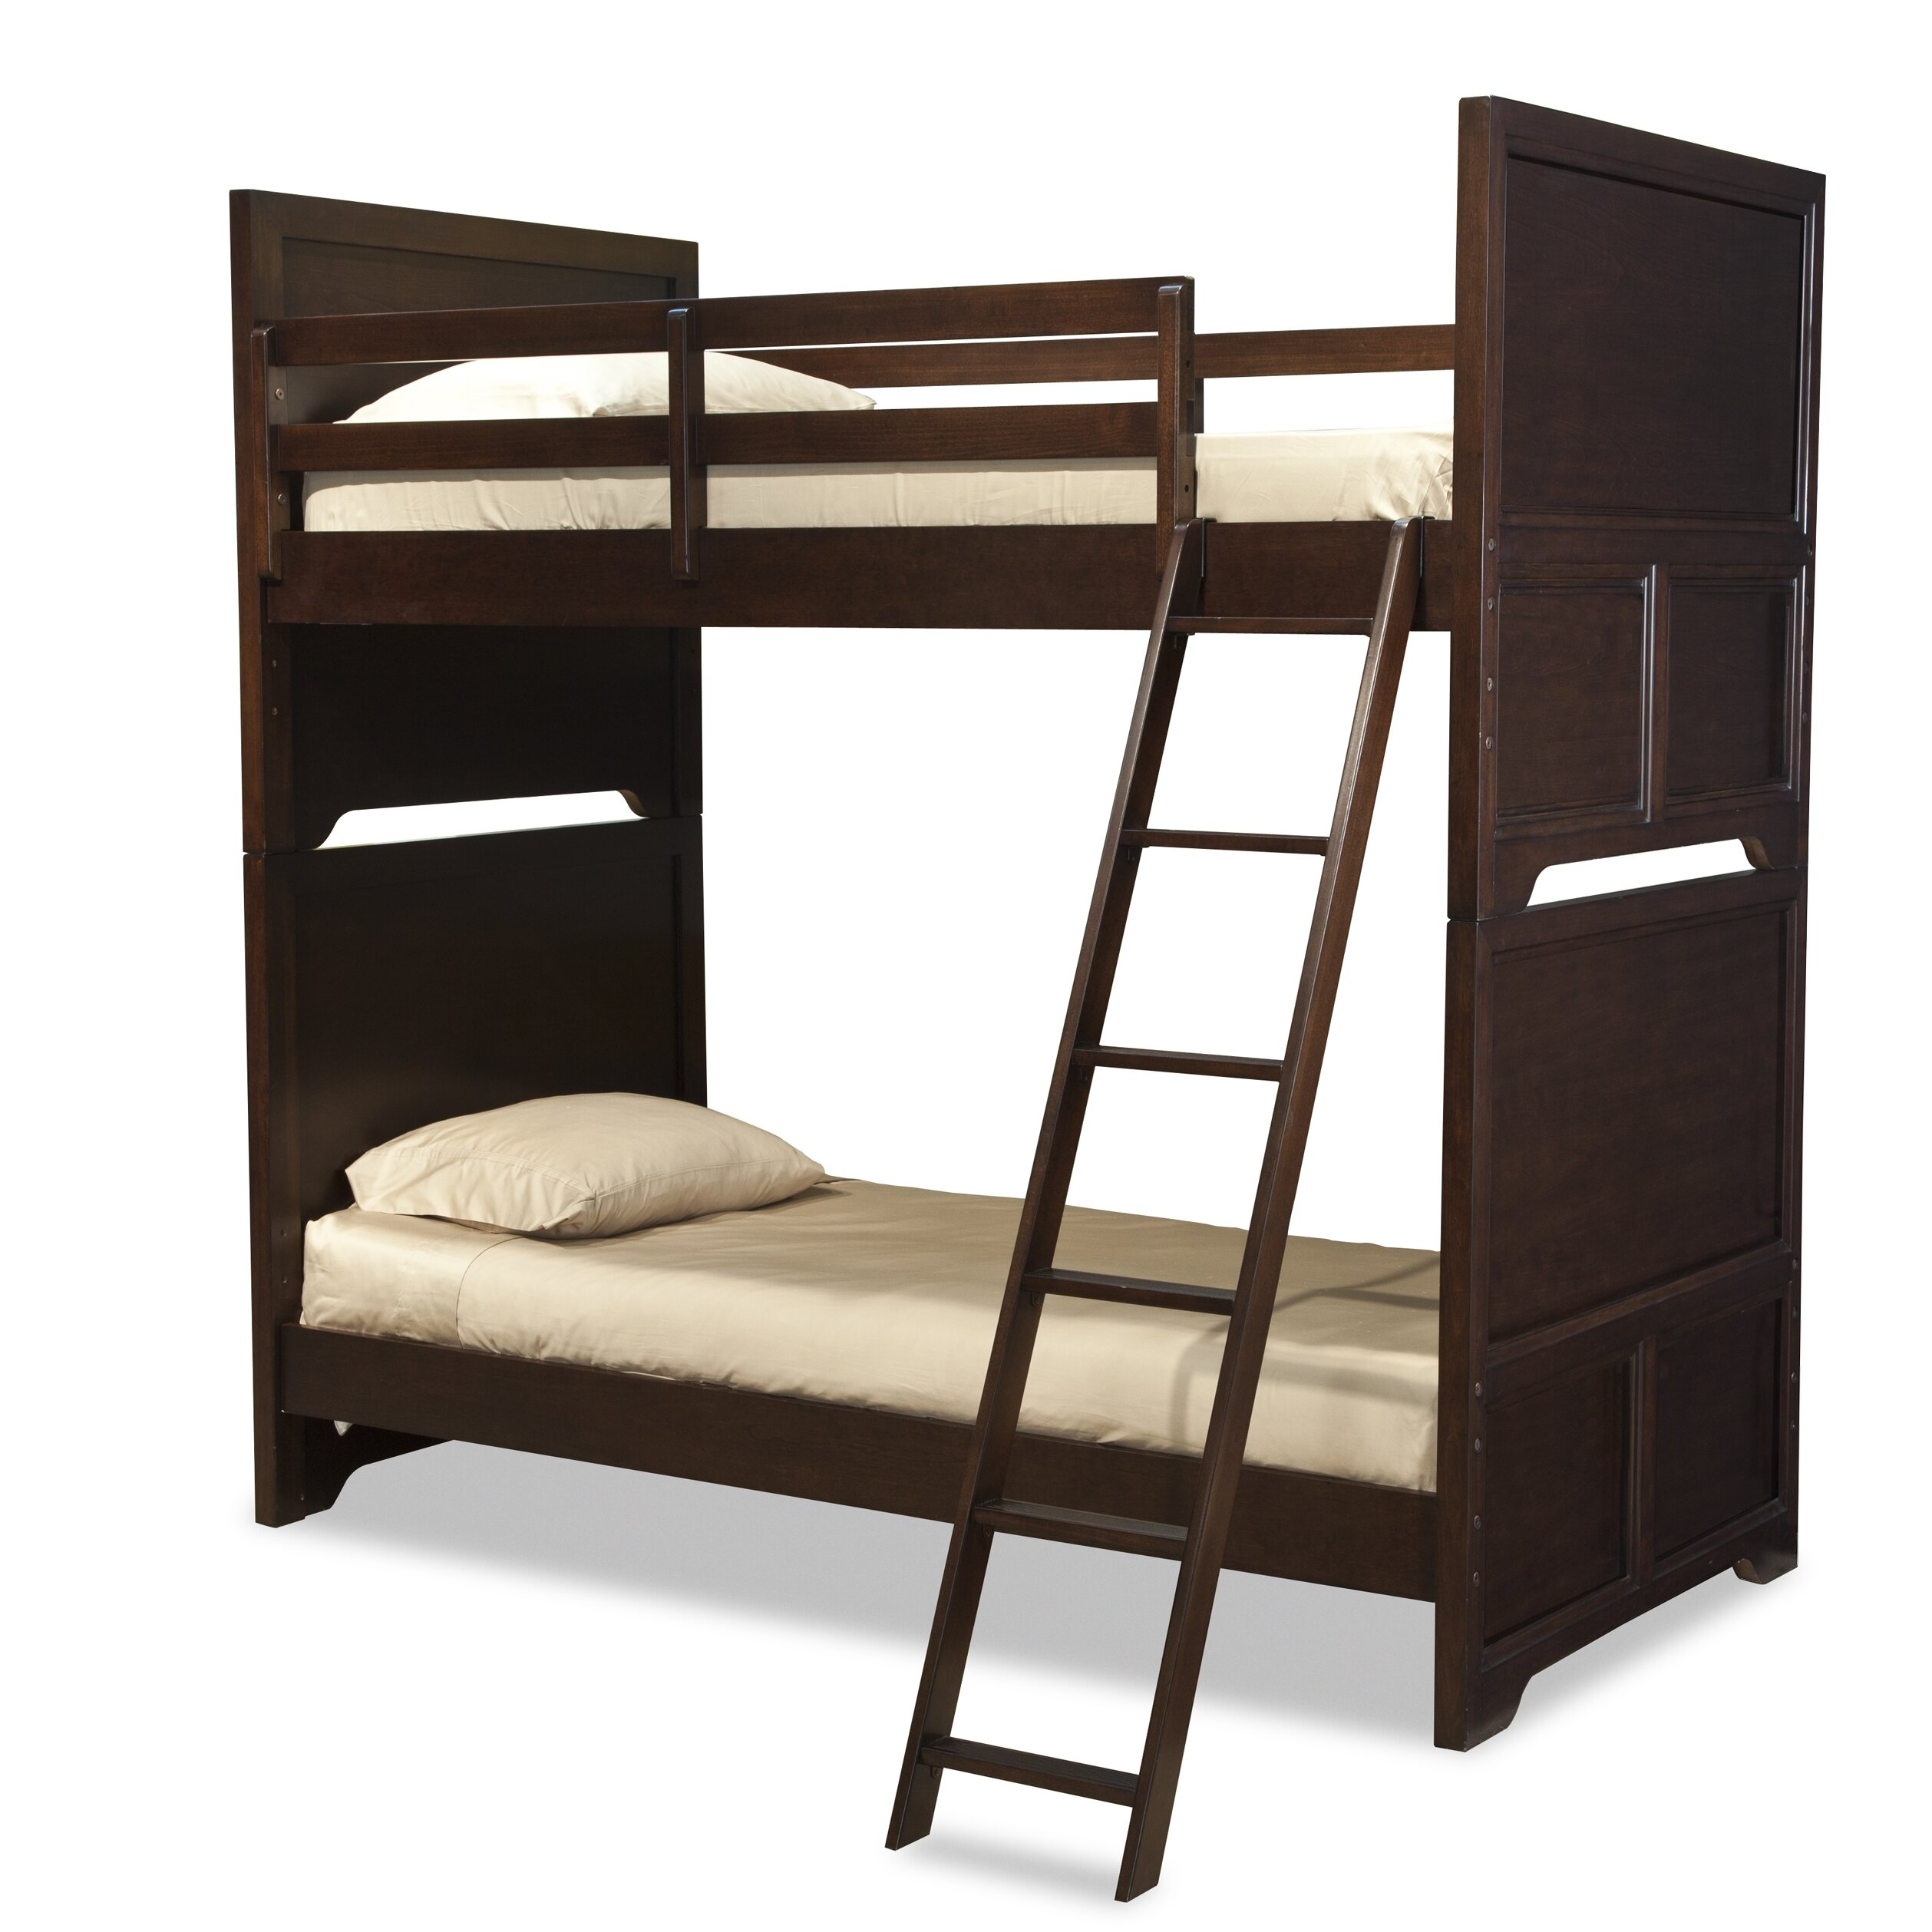 Lc kids benchmark twin over twin standard bunk bed with for Kids twin bed with drawers